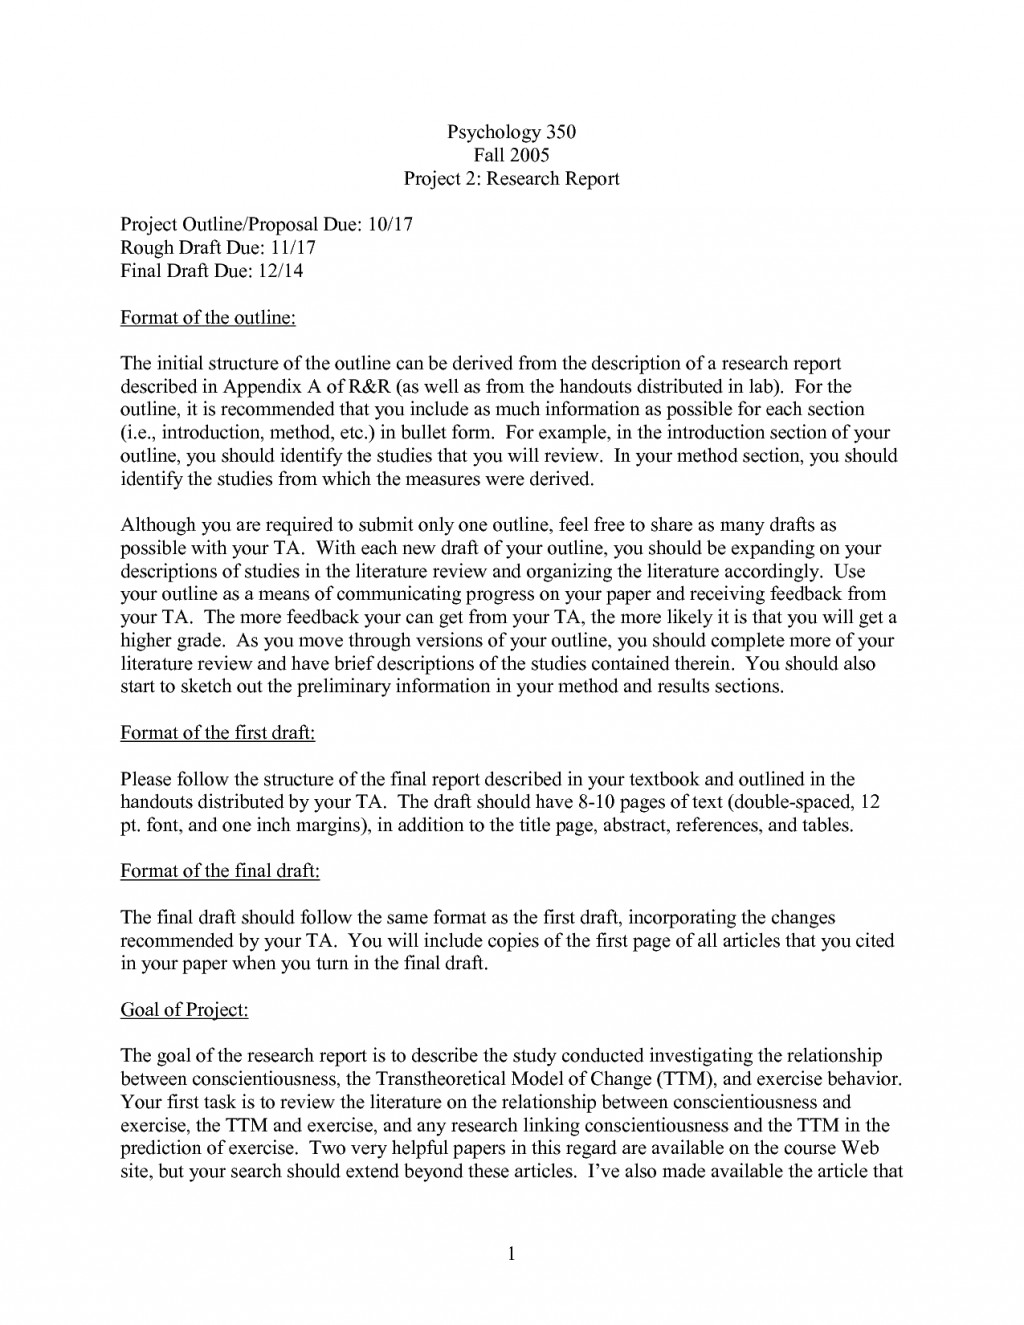 013 Researchs For Psychology Essay About How To Write The Guide Writing Topics Argumentative20 1024x1325 Fascinating Research Papers Paper Dreams Social Large